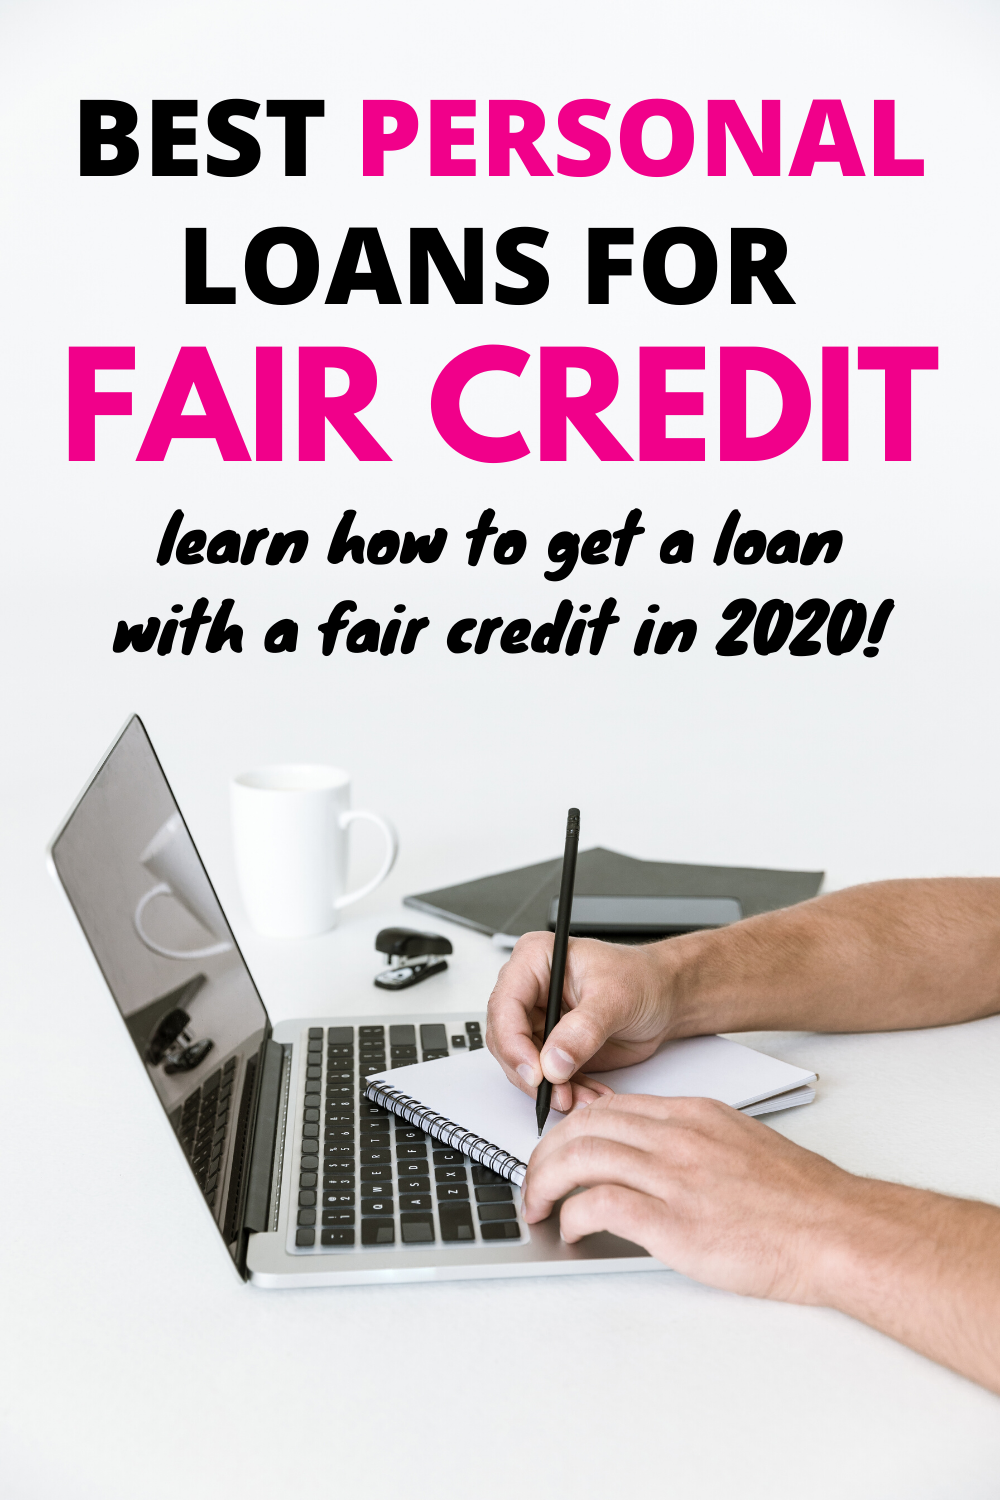 5 Best Personal Loans For Fair Credit For 2020 Growthrapidly In 2020 Personal Loans Fair Credit Personal Finance Budget